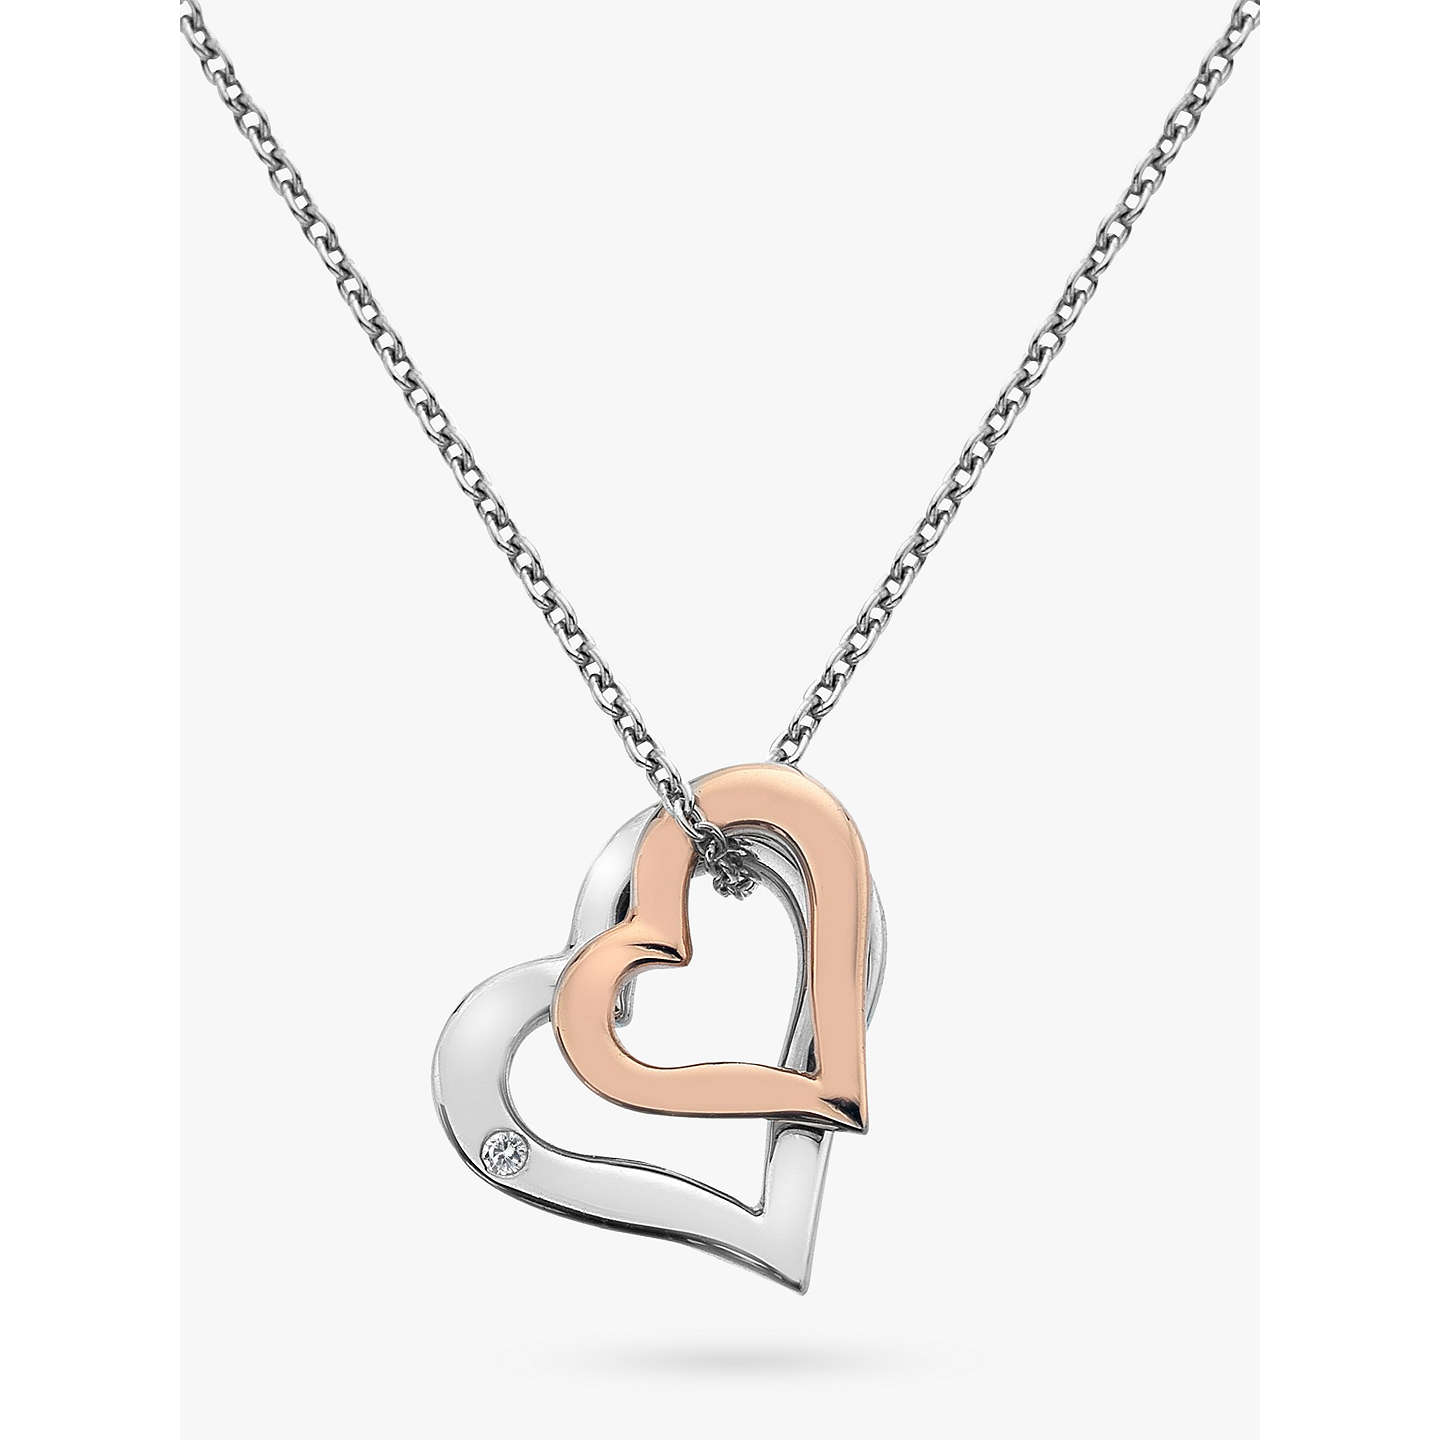 cz zirc heart paved pendant necklace diamonds round cubic open sterling zirconia love double original w products silver white